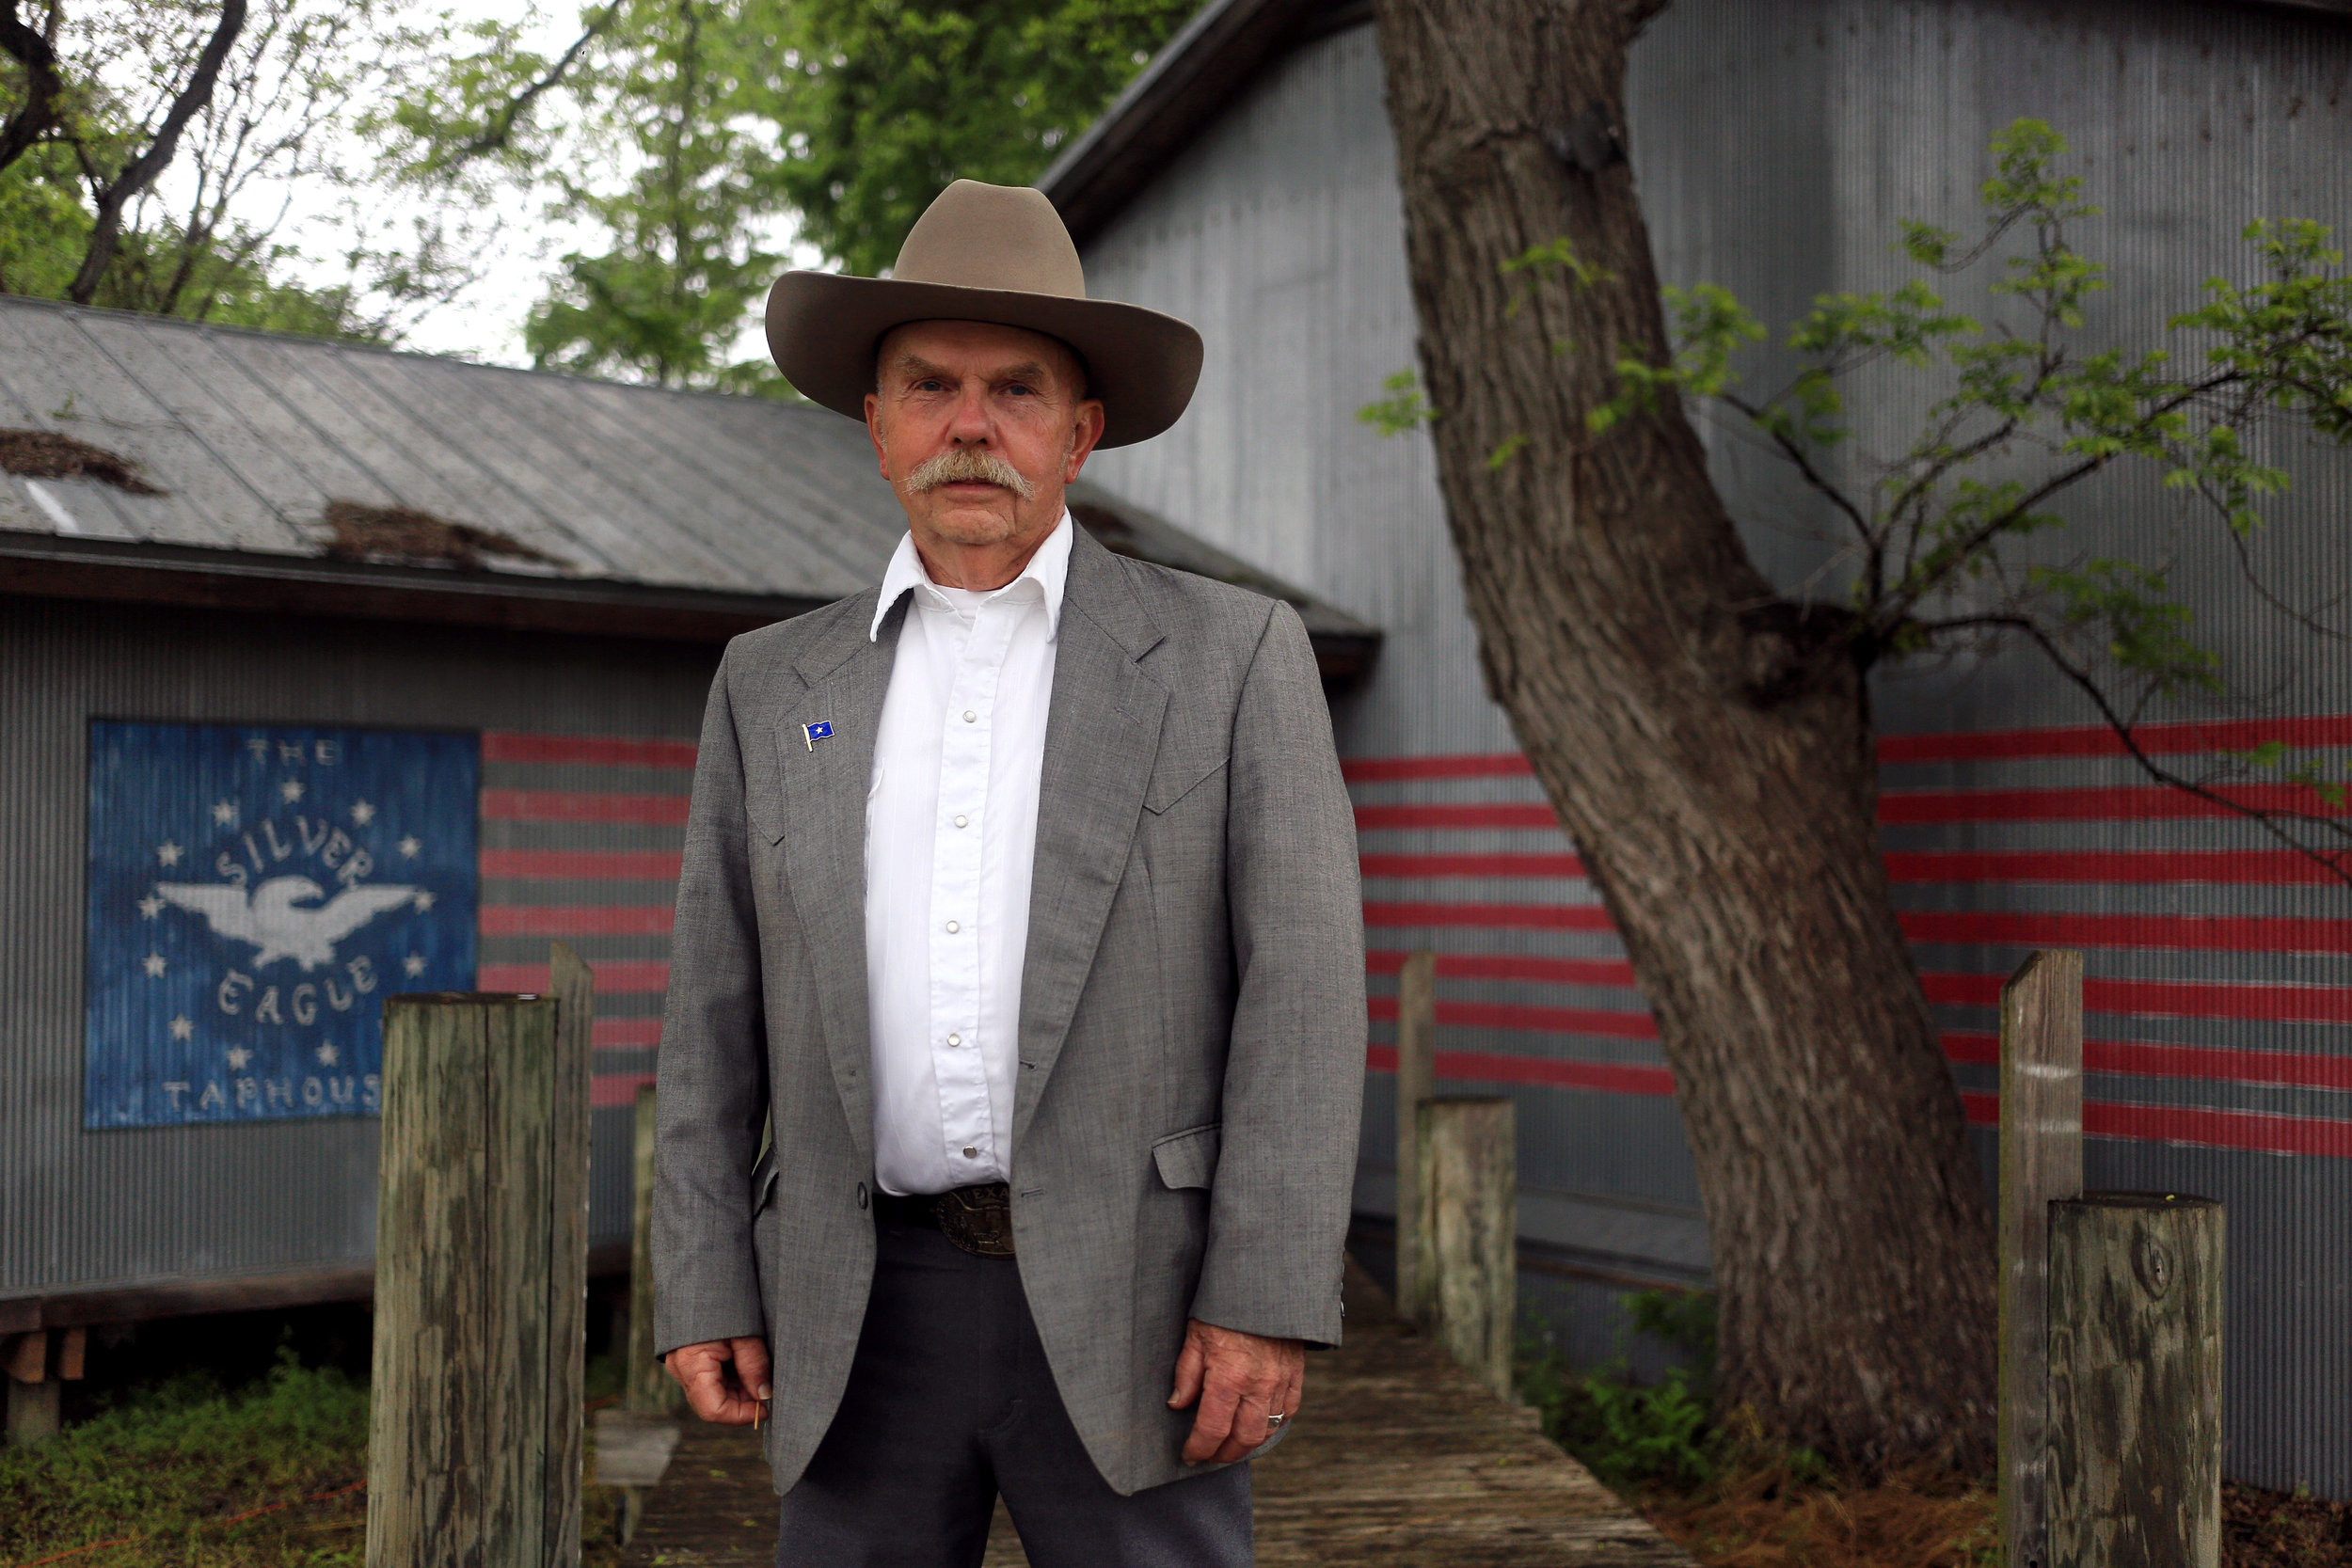 """John Jarneke, president of the Republic of Texas, lamented taking his tie off before he was photographed outside the Silver Eagle Taphouse in McQueeny, TX. The 72-year-old retired construction contractor from Fredericksburg has a vision of Texas where """"people will be friendlier and less worried"""" with a smaller government, less police and lower taxes."""